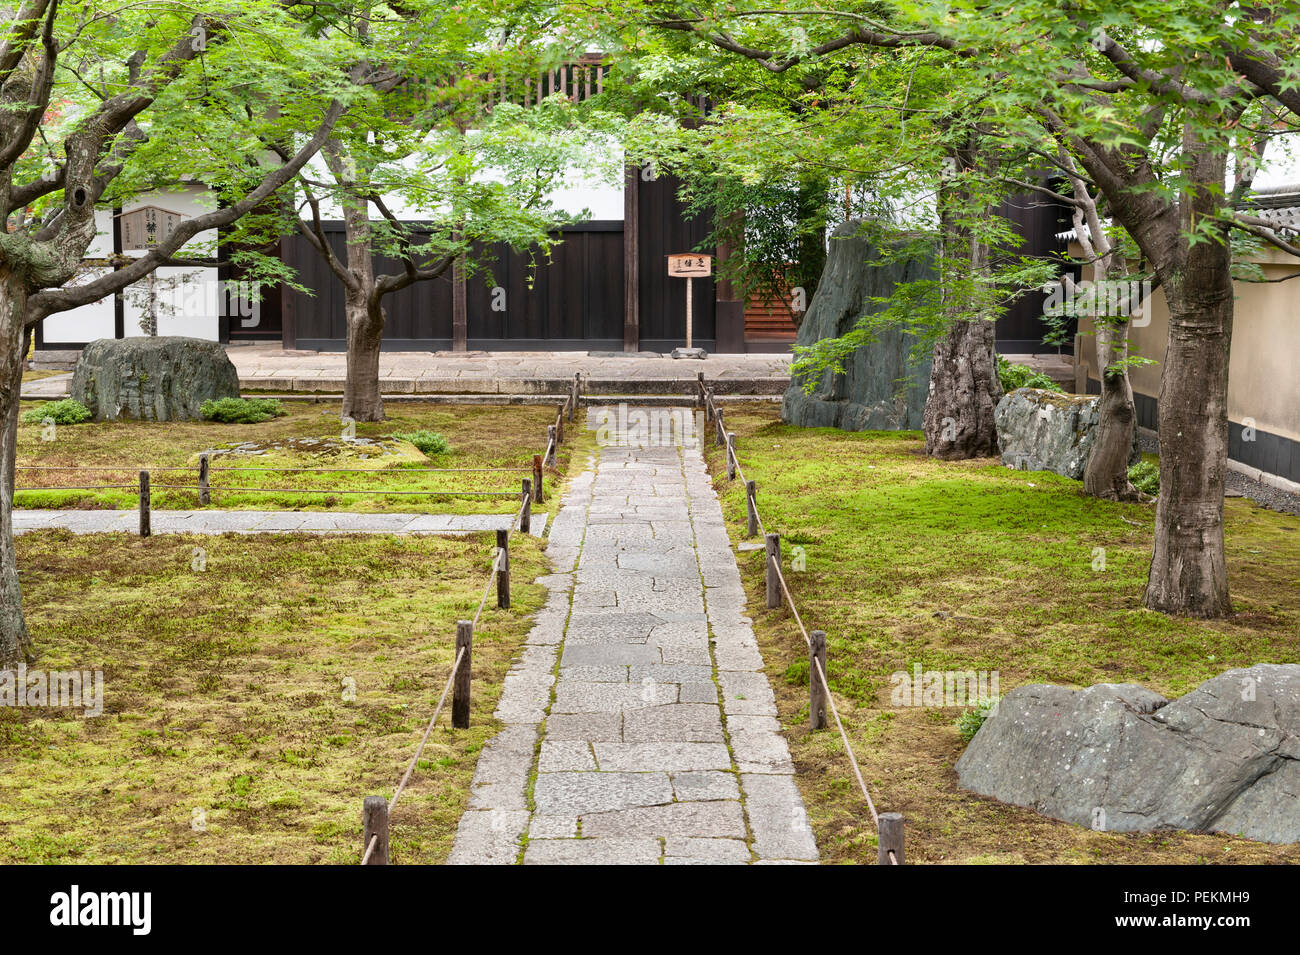 Kyoto, Japan. The entrance to Obai-in zen temple at Daitoku-ji - Stock Image